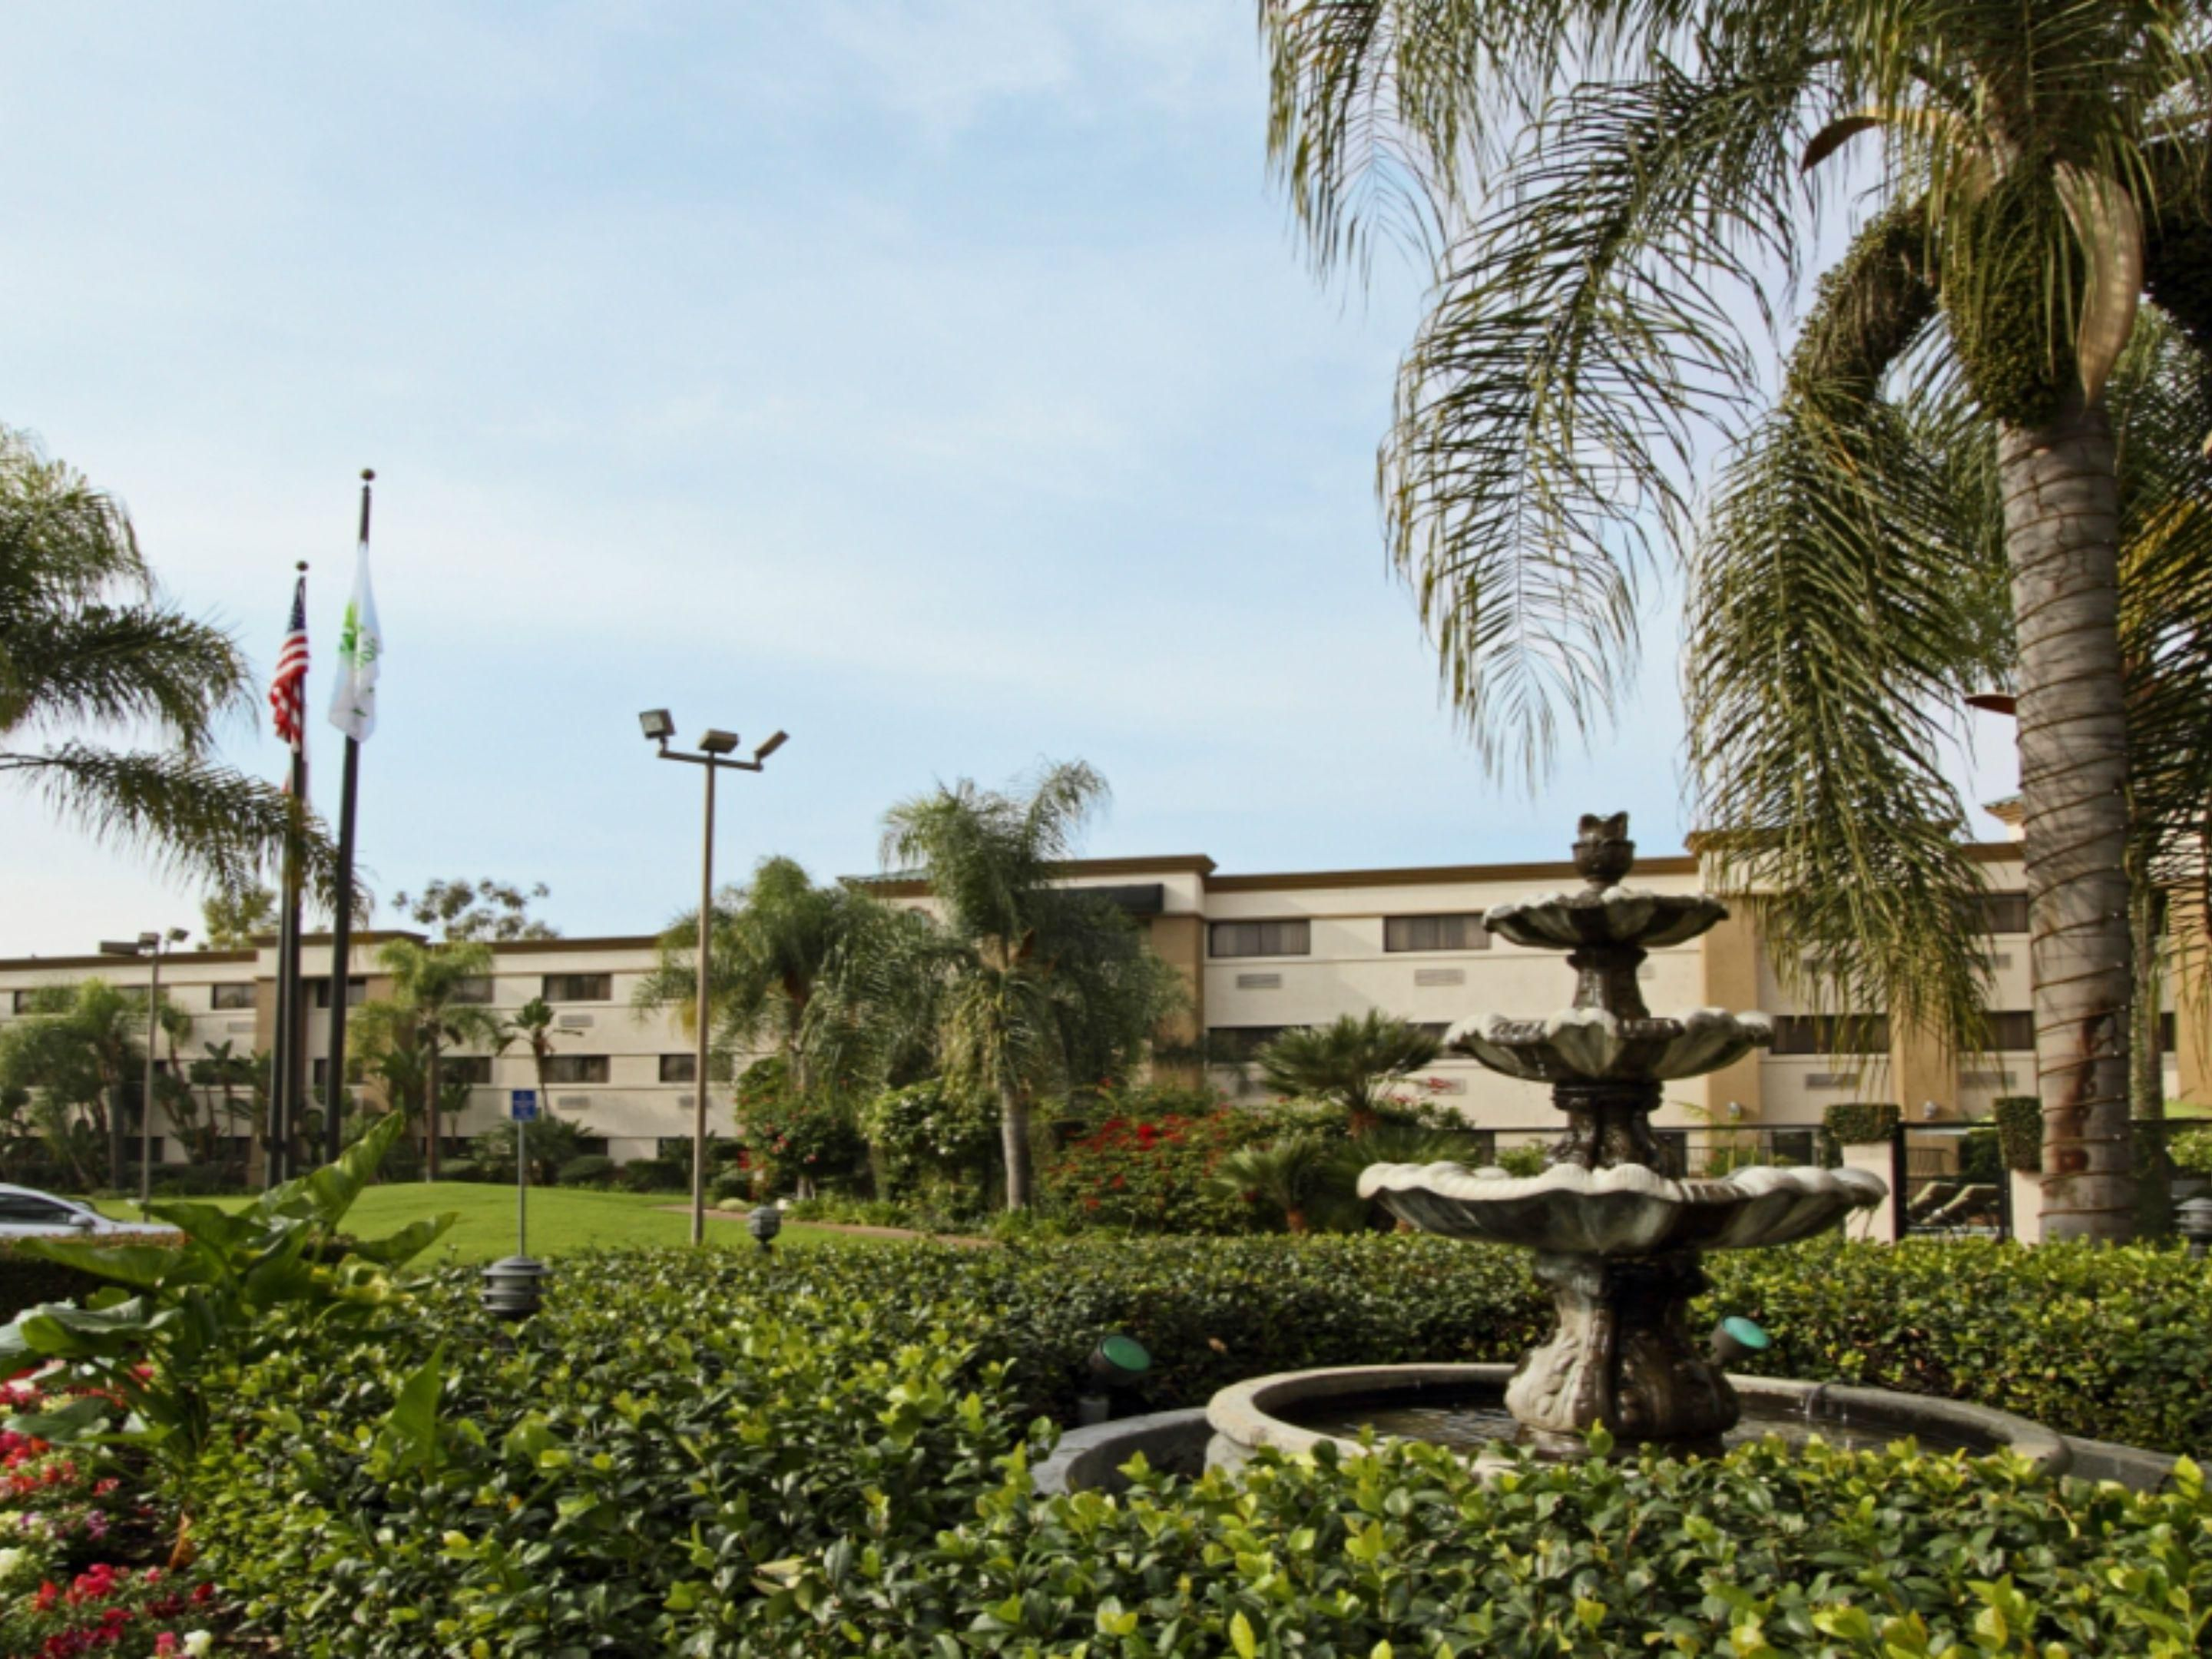 Enjoy our tranquil landscapes at the Holiday Inn OC Airport.